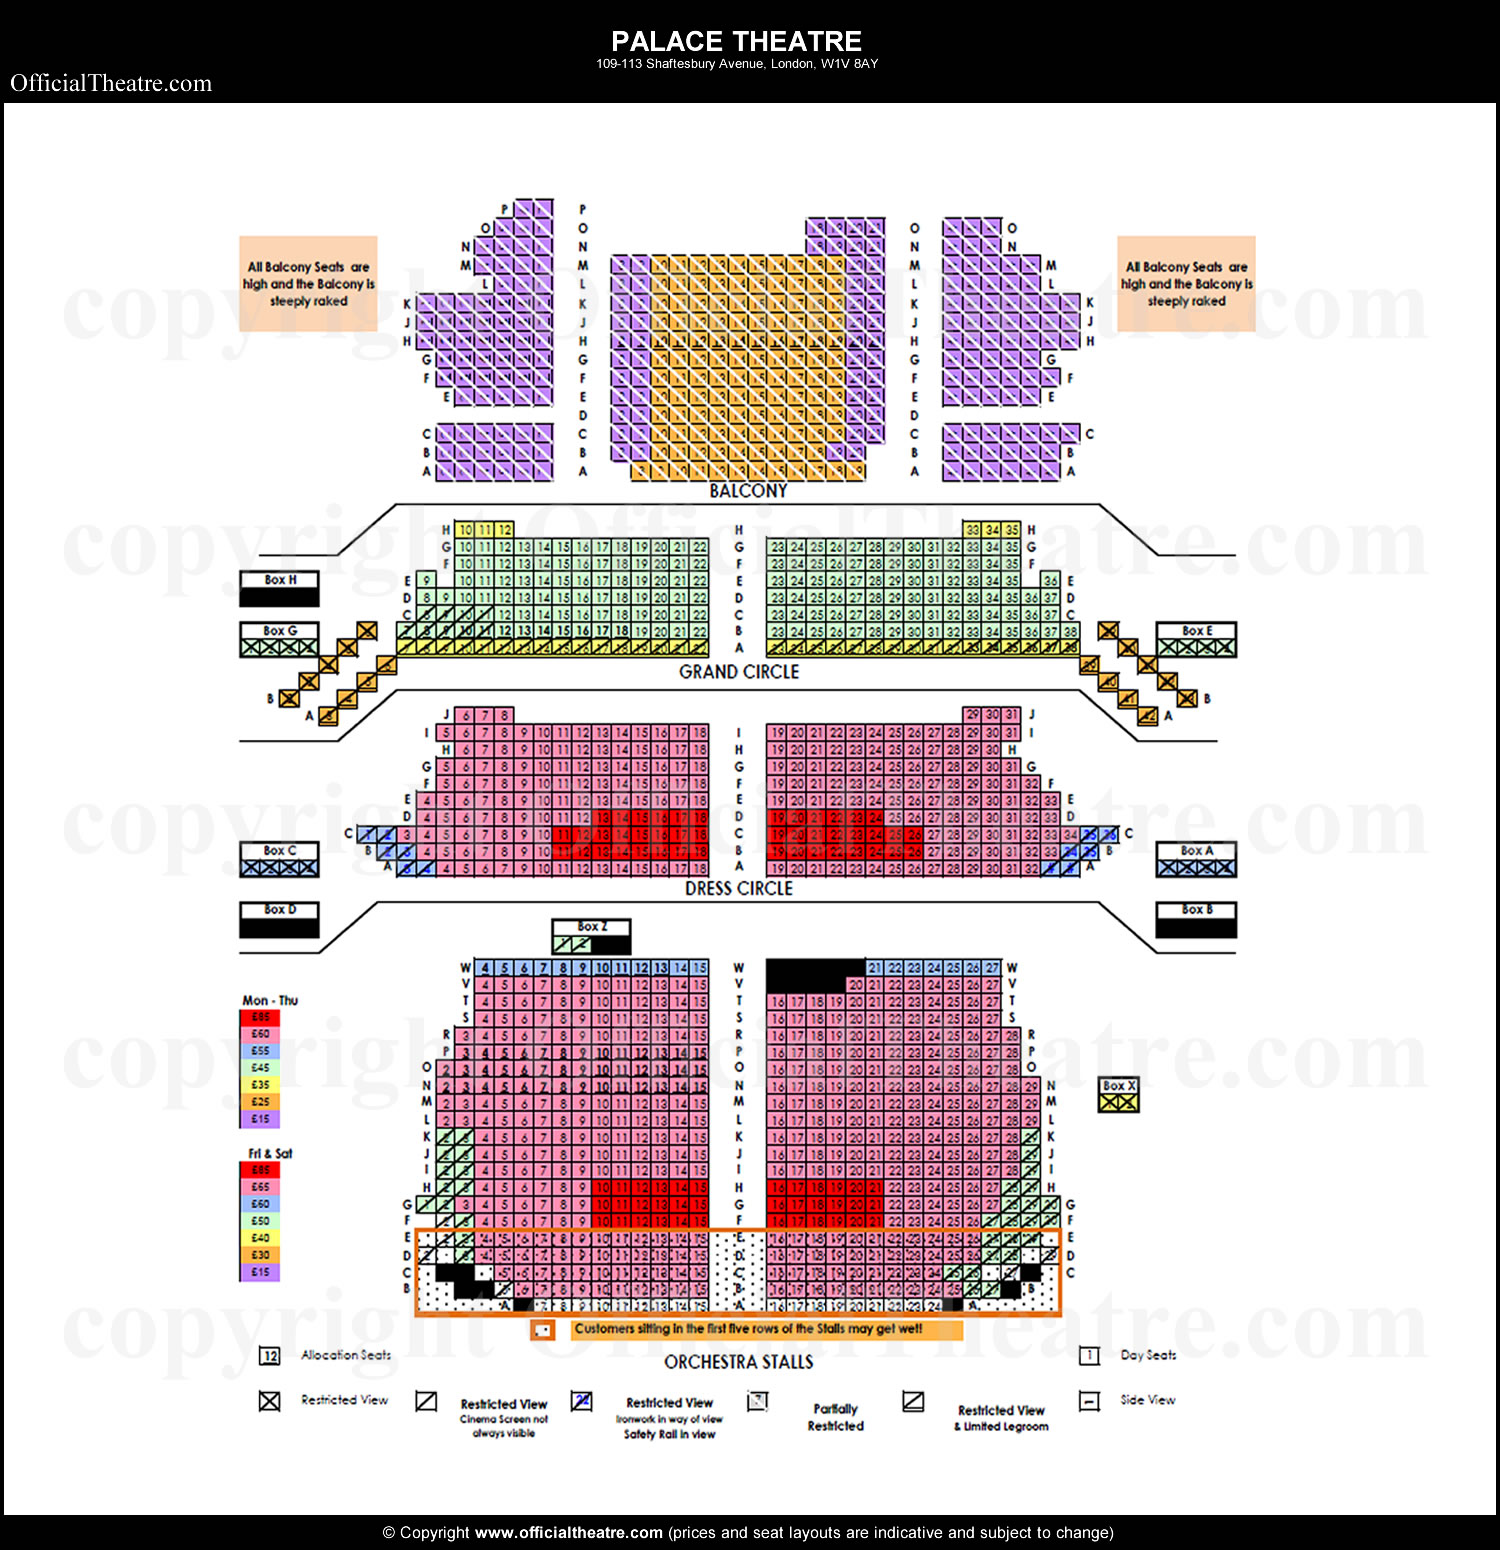 Palace Theatre Seating Price